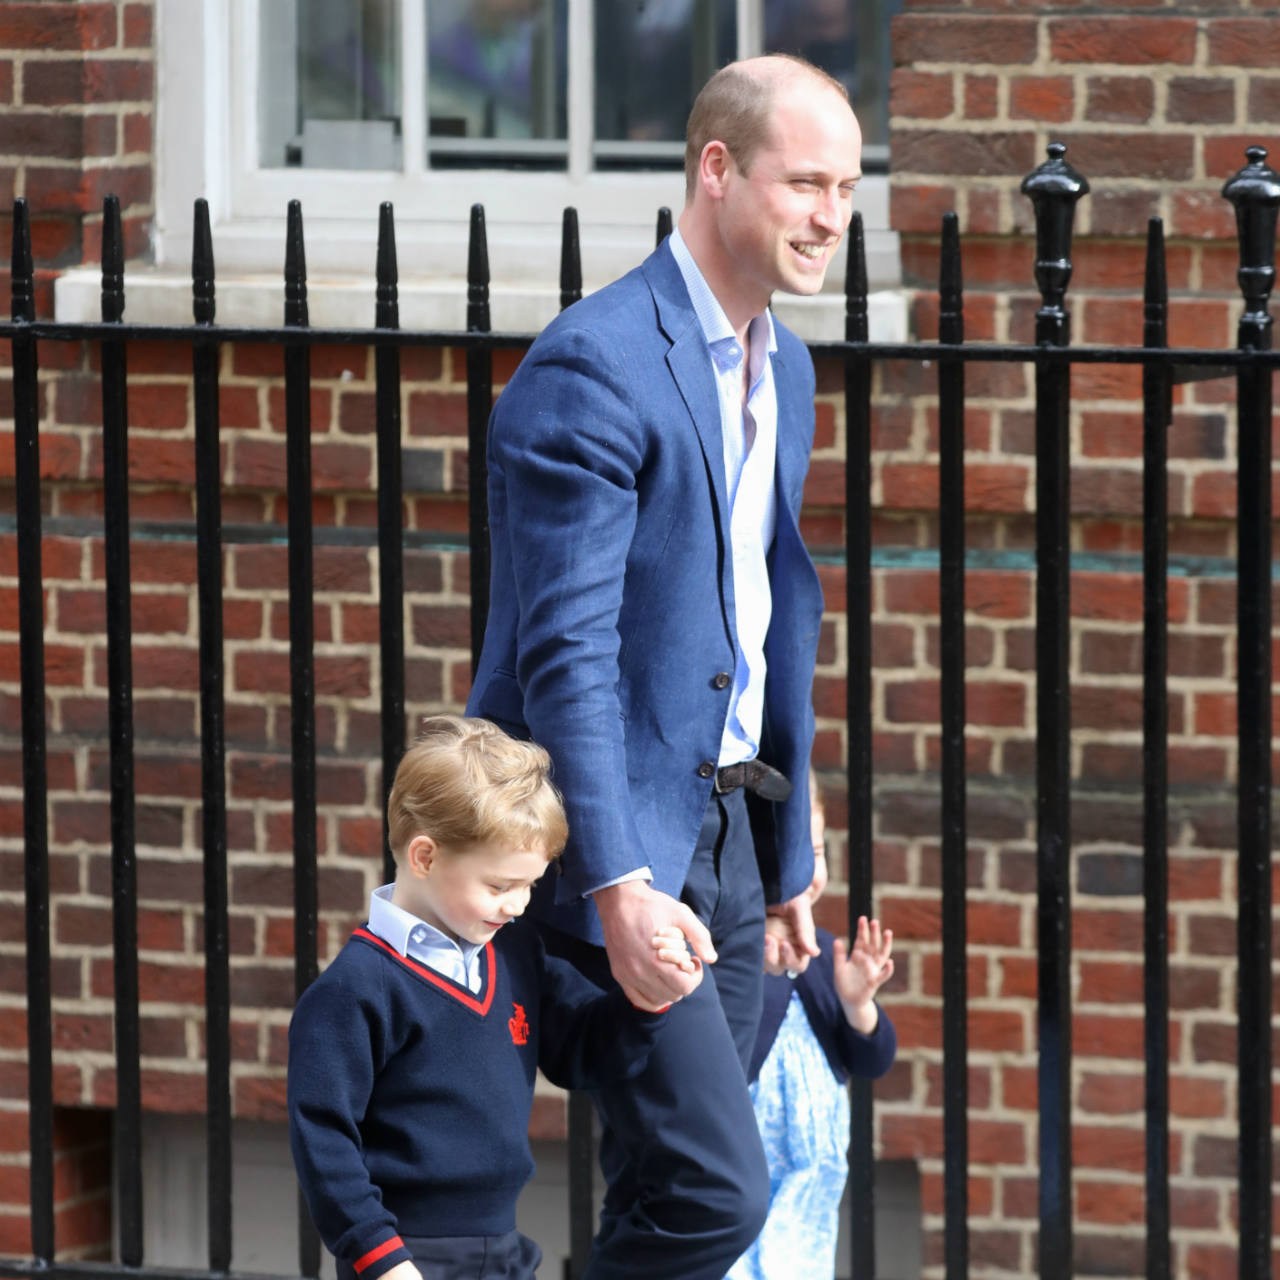 Prince George gave himself the cutest nickname